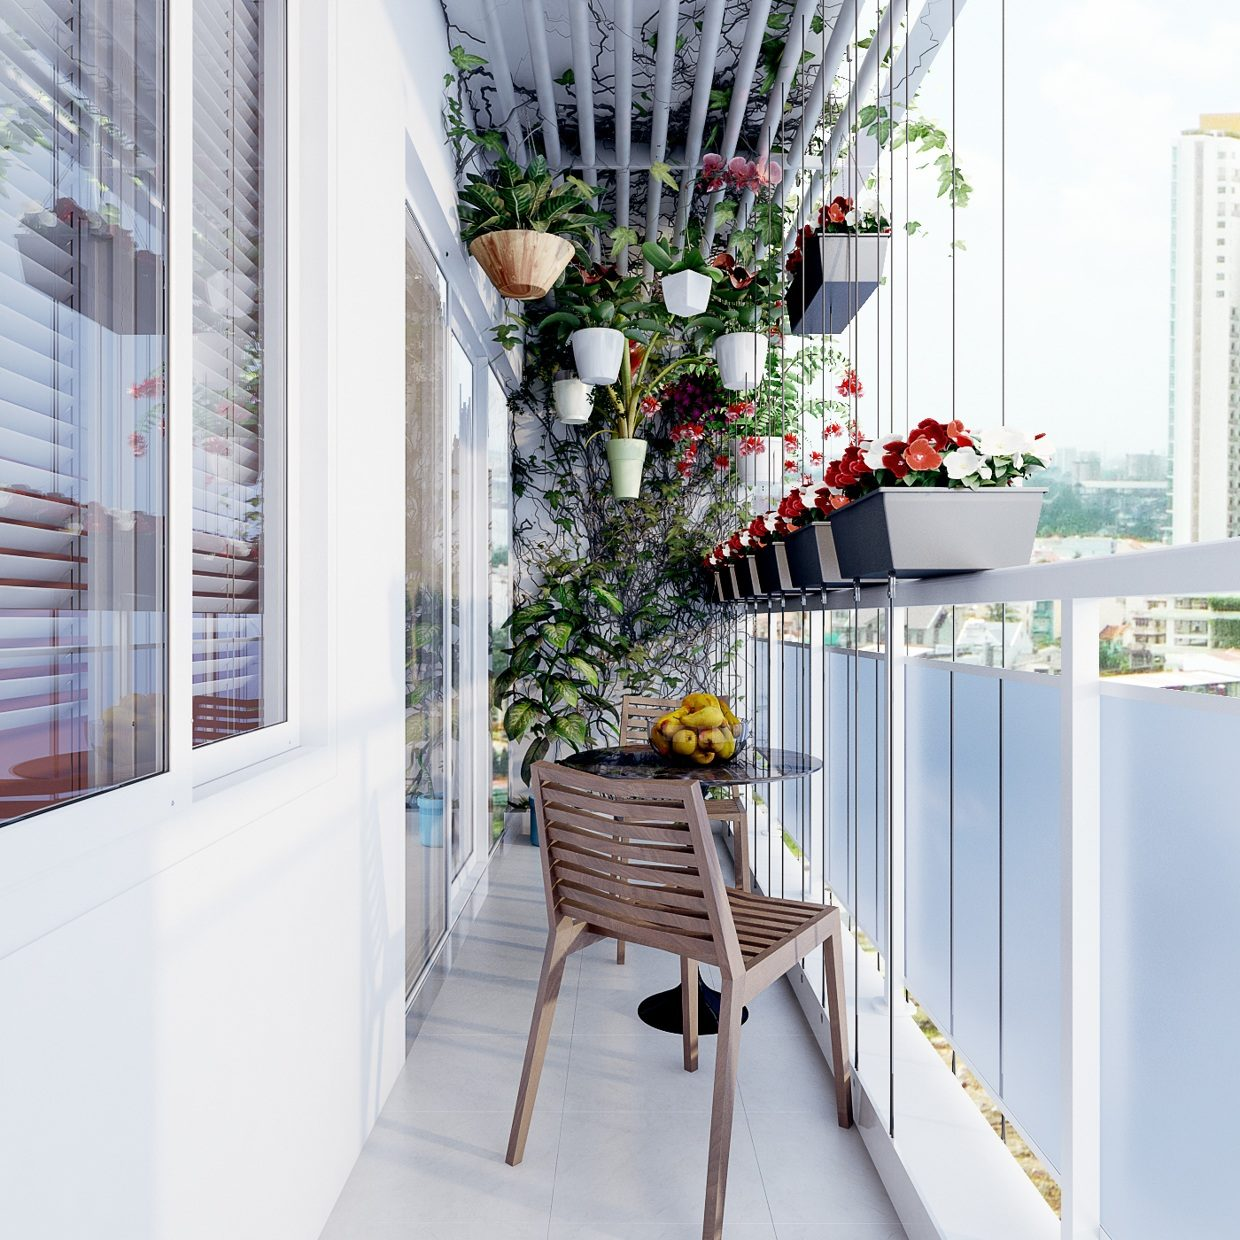 12-balcony-garden-the-hanging-garden-homebnc